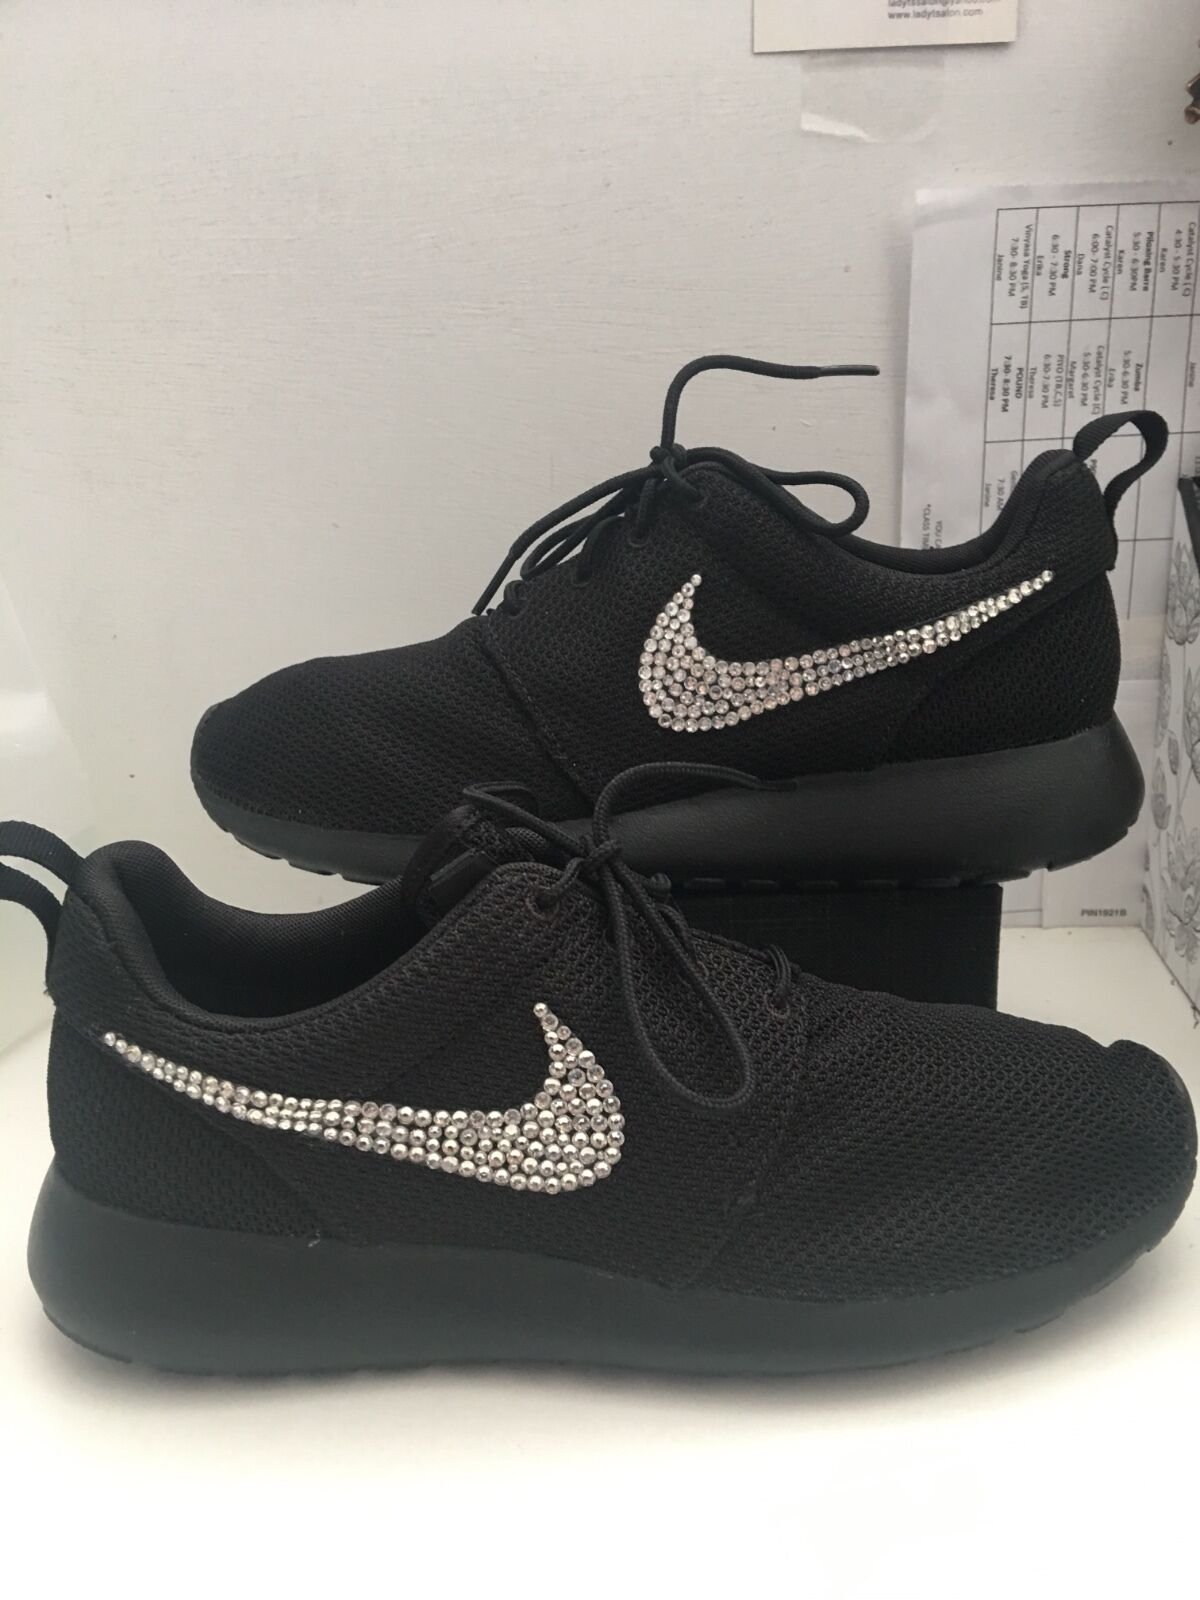 Nike 511881 026 Womens Size 10.5 Rosche One Black Sequined Running Sneakers Shoe